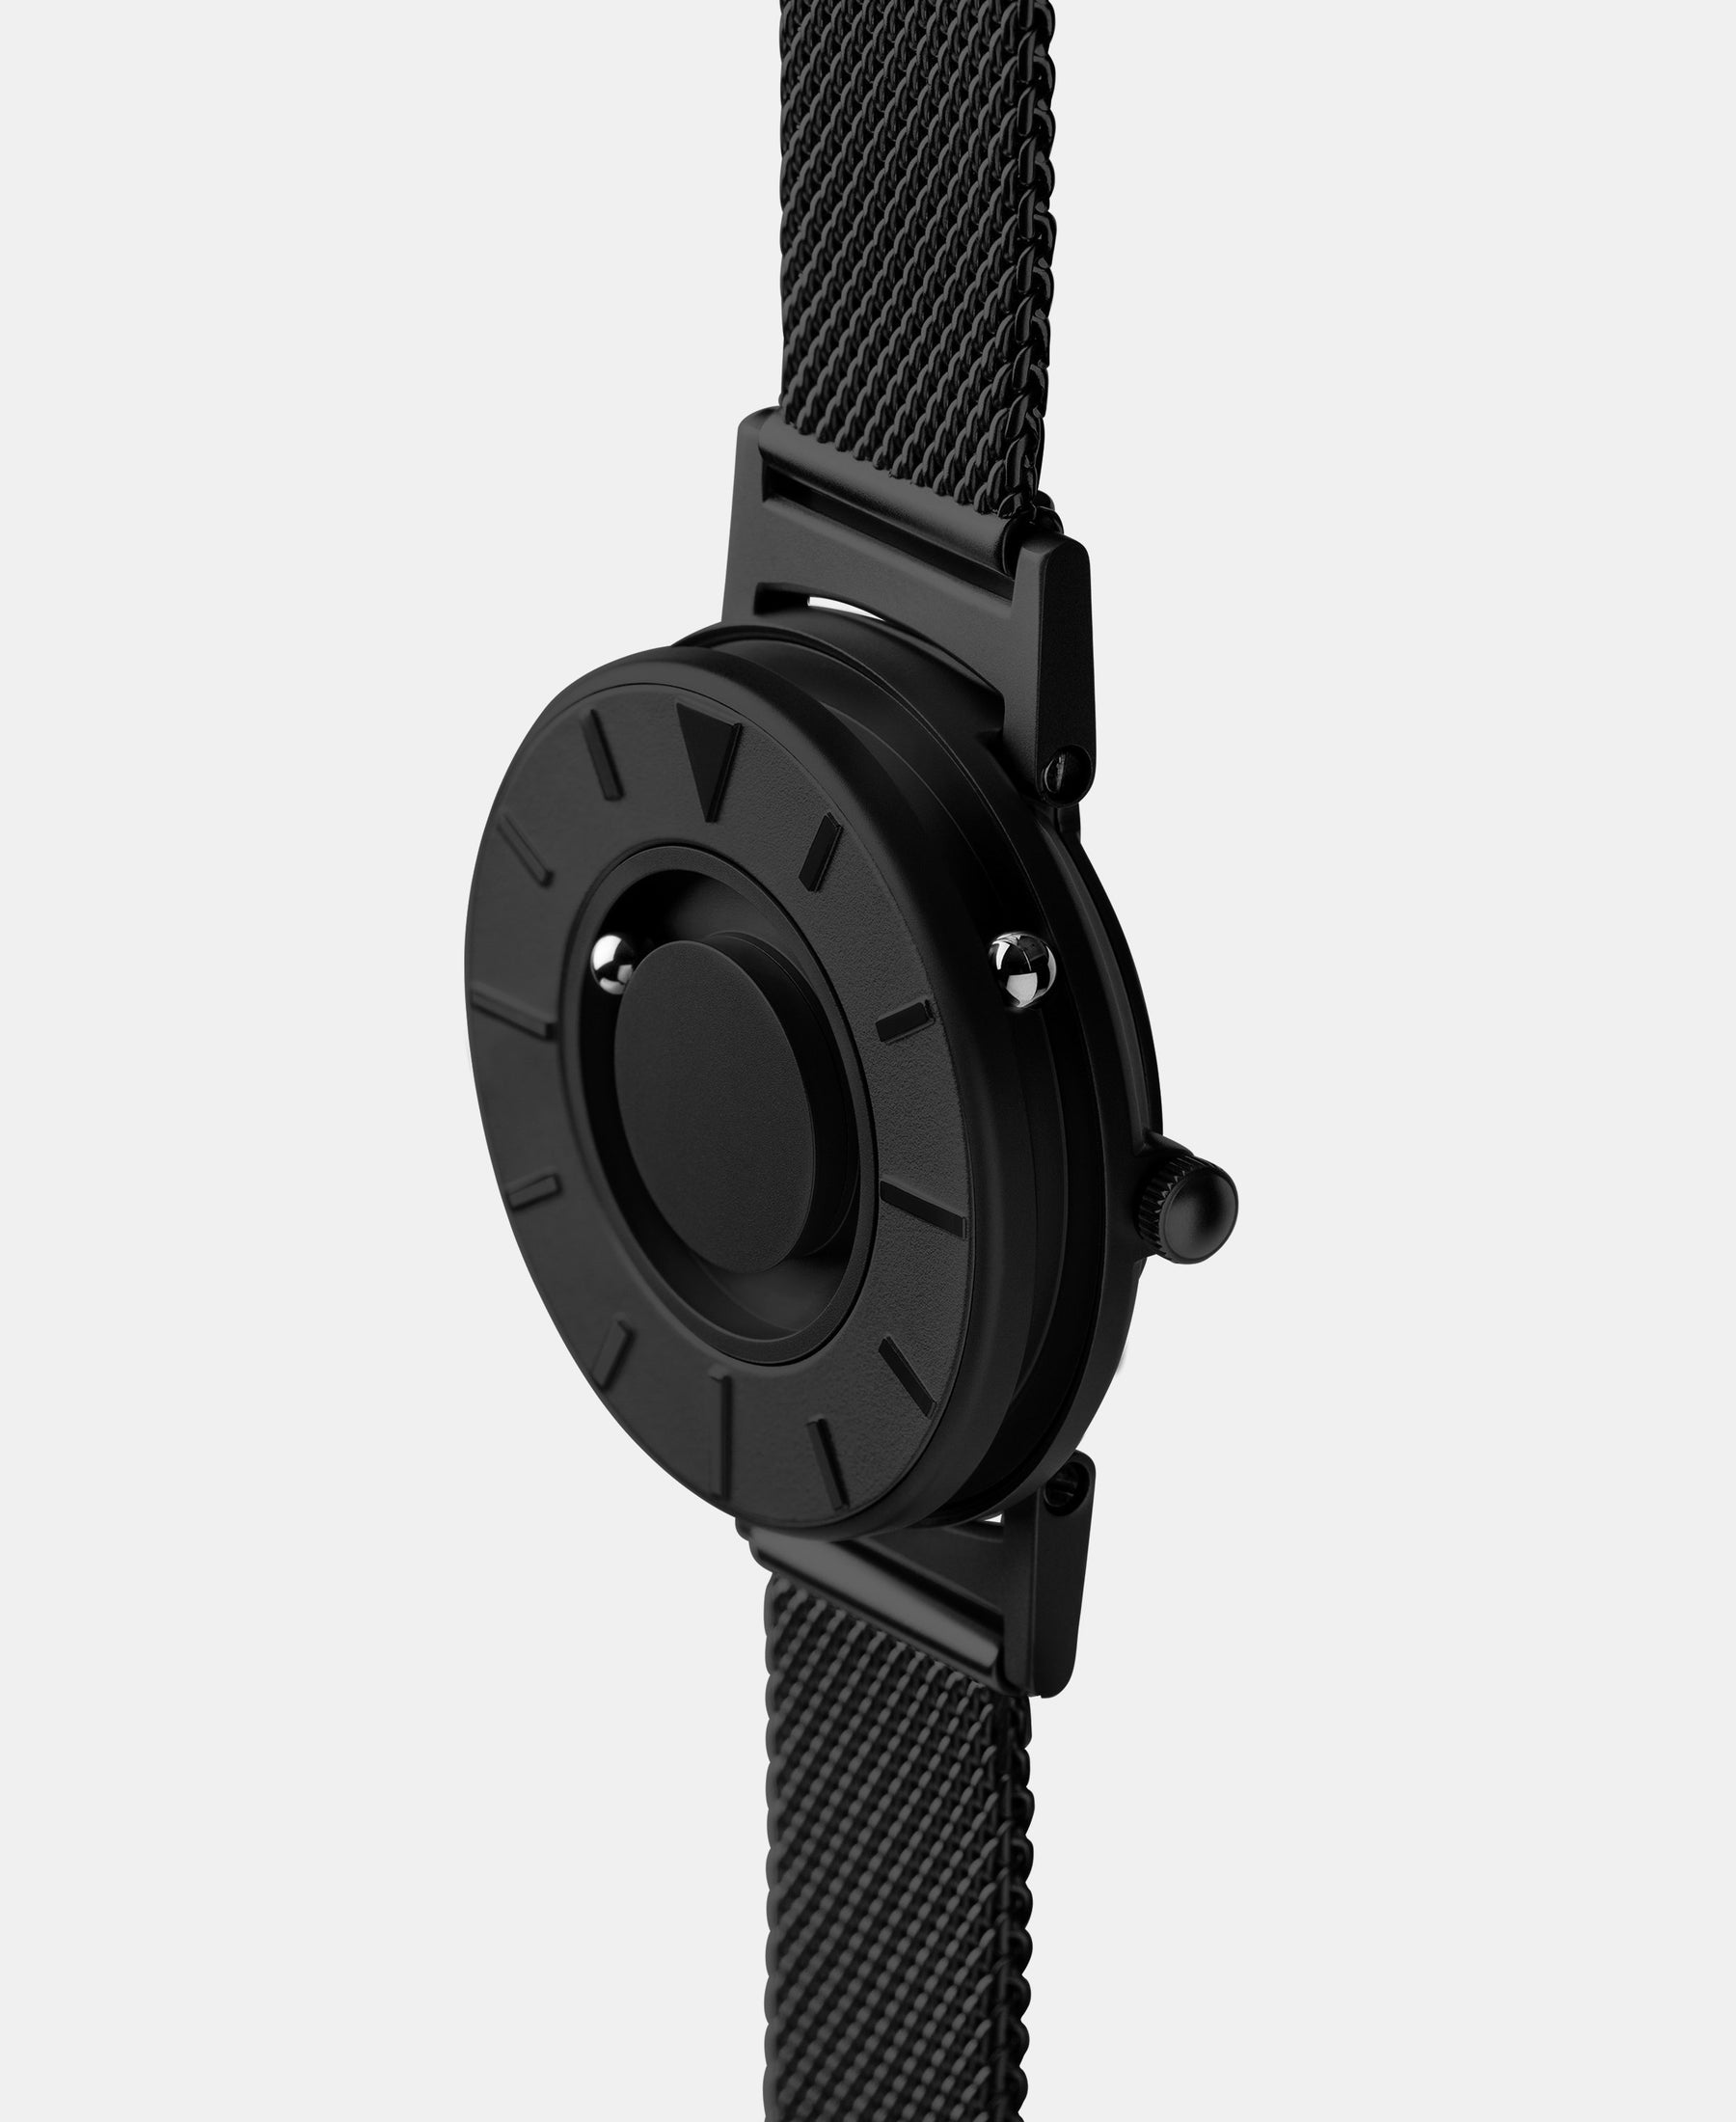 Load image into Gallery viewer, A photo of the watch from a side angle. The recessed track around the outside of the watch face is shown with the hour ball bearing in the track. The raised markers are noticeable from this perspective.